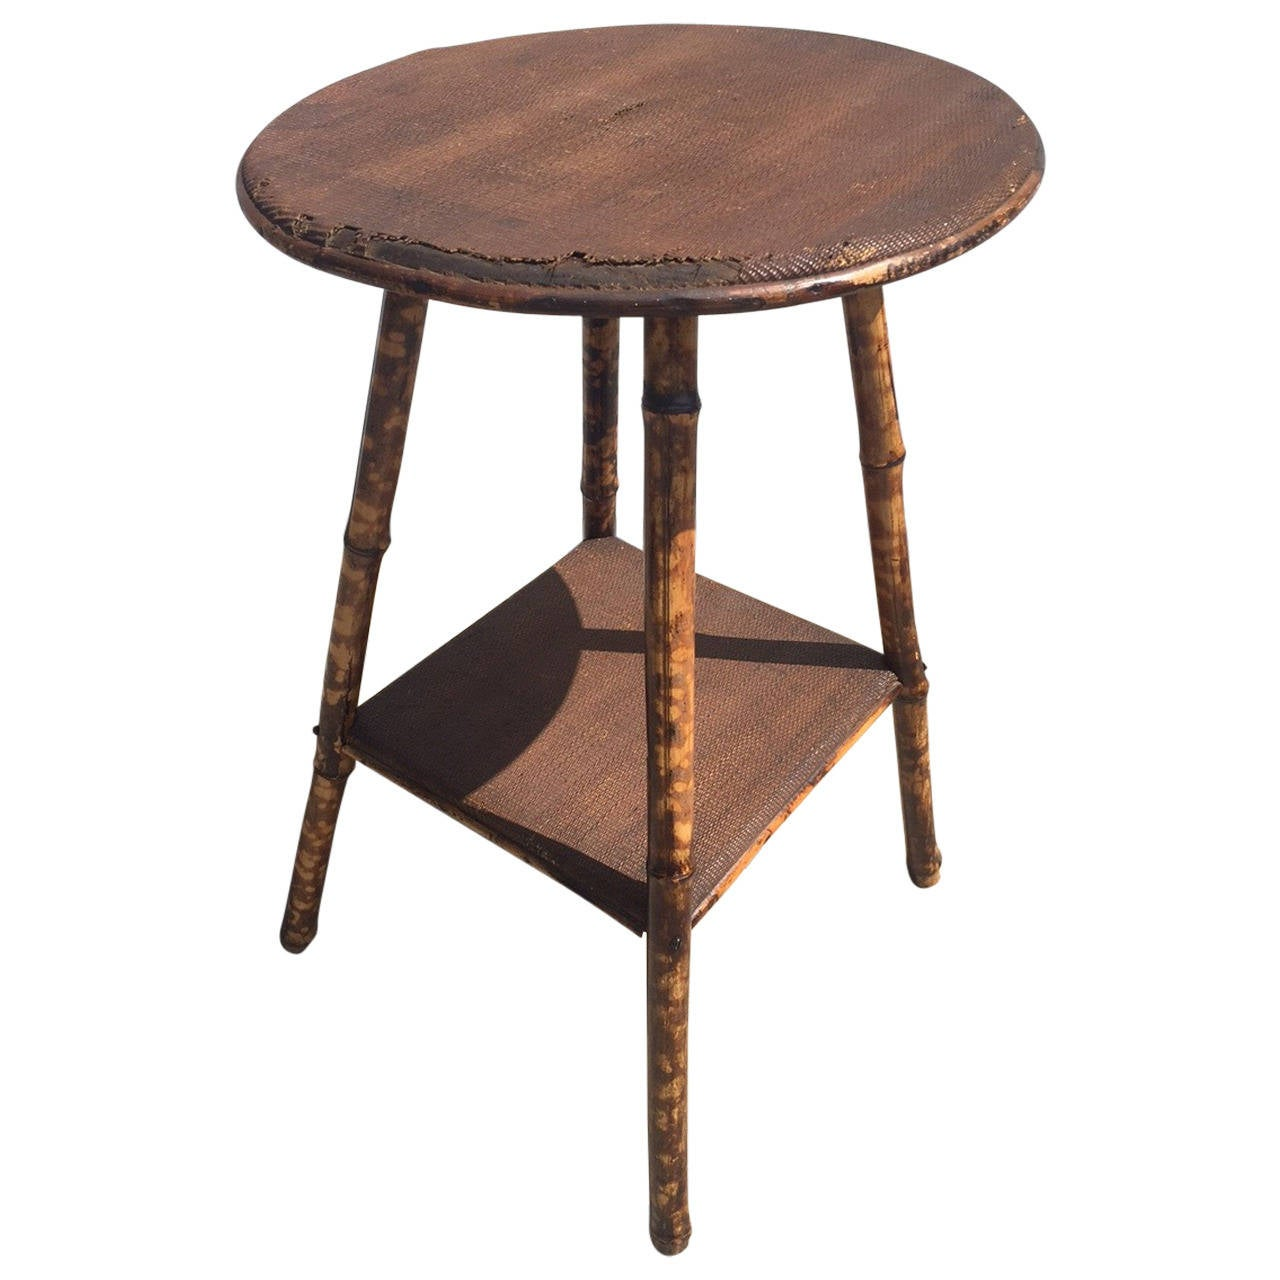 1930s english scorched bamboo and rattan round side table at 1stdibs 1930s english scorched bamboo and rattan round side table 1 geotapseo Choice Image